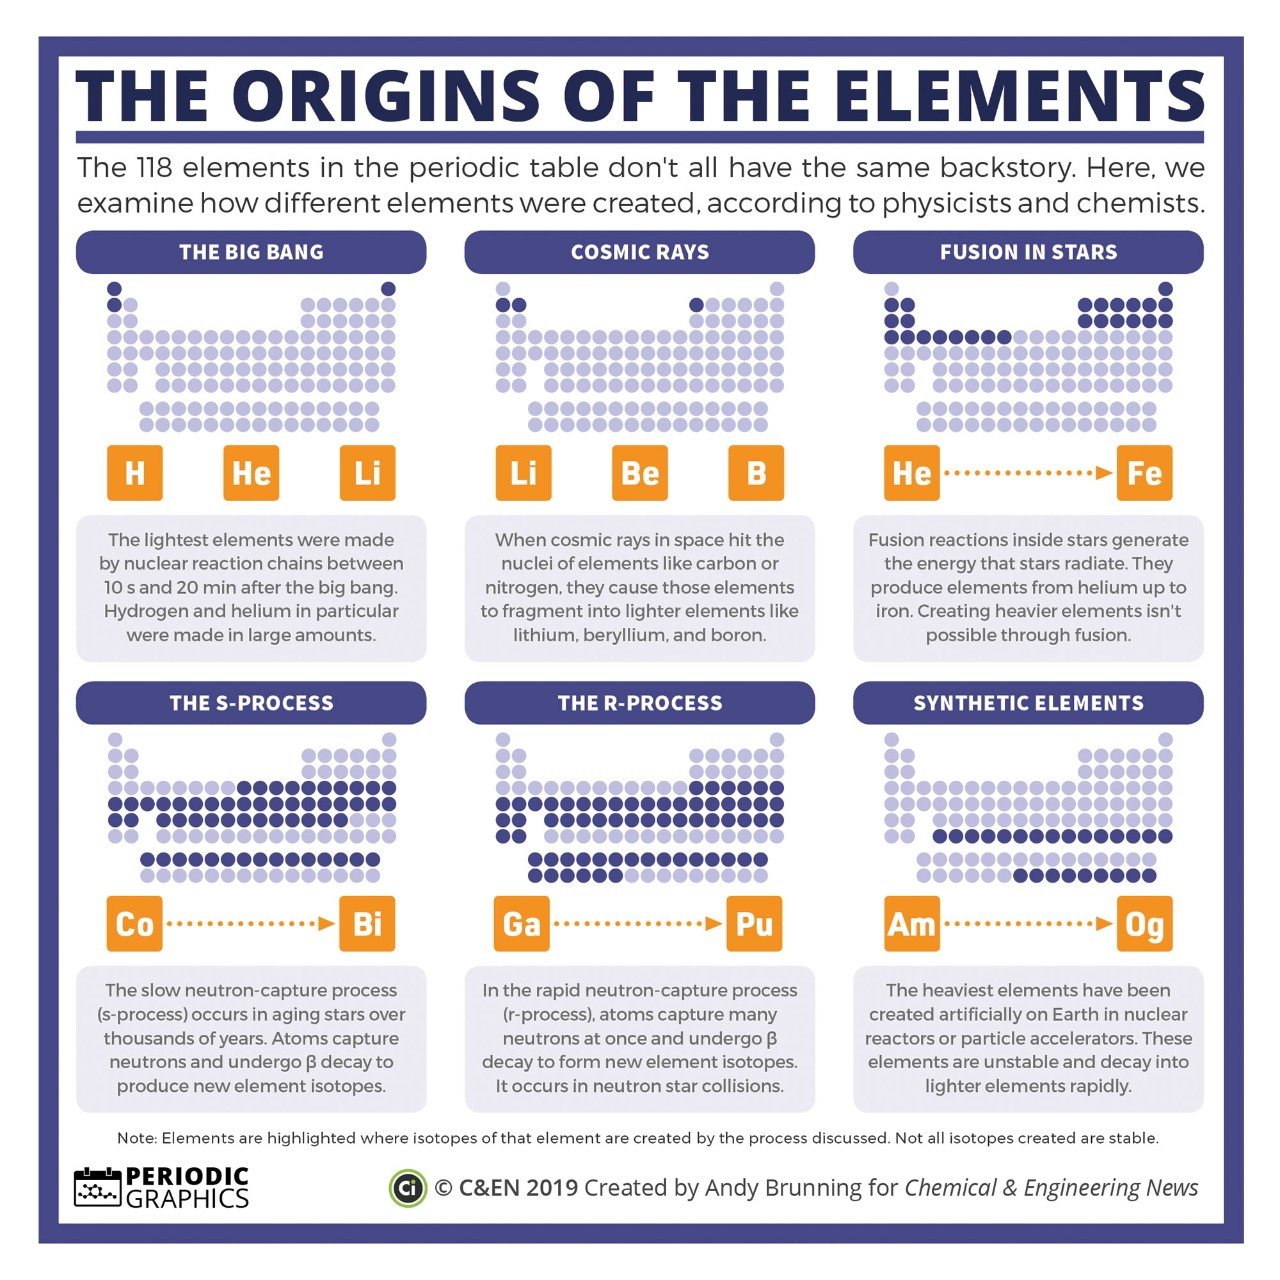 Origins of the Elements infographic